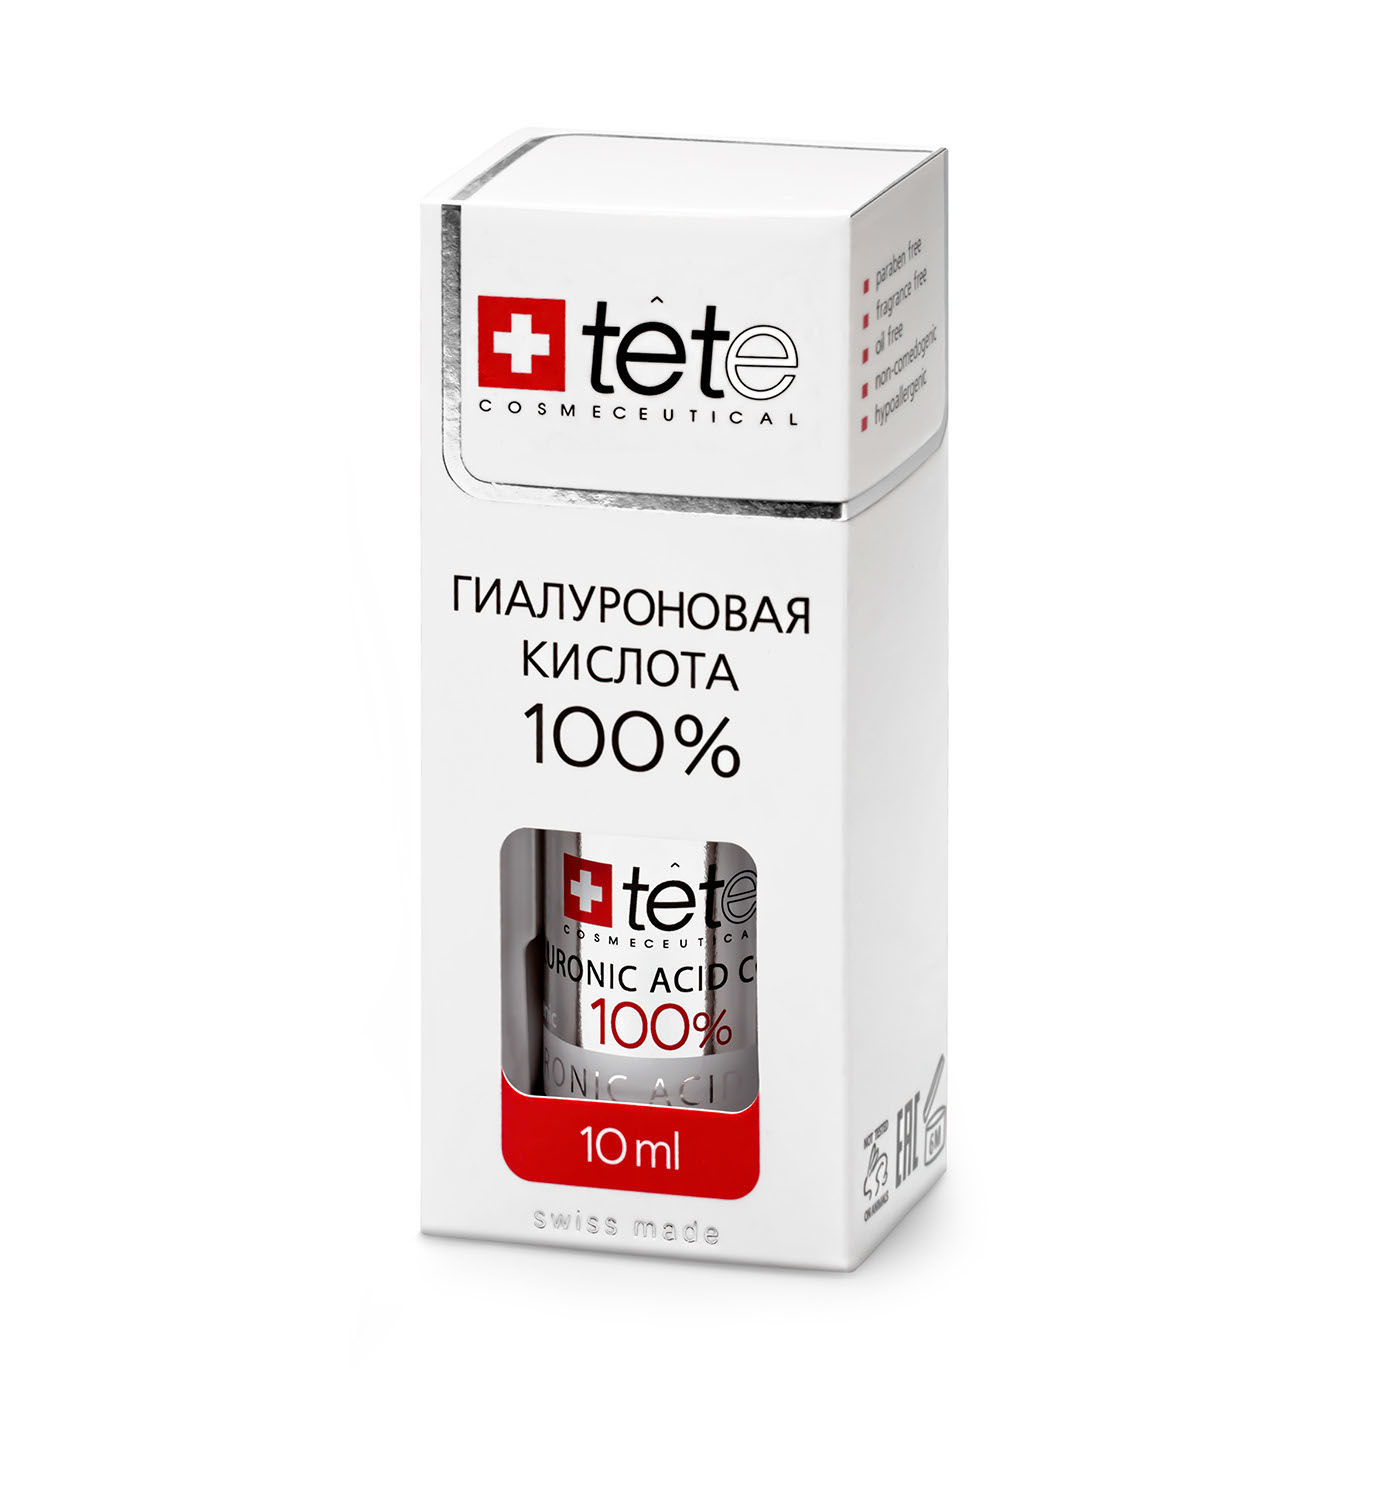 Мини гиалуроновая кислота 100% TETe Cosmeceutical Hyaluronic Acid